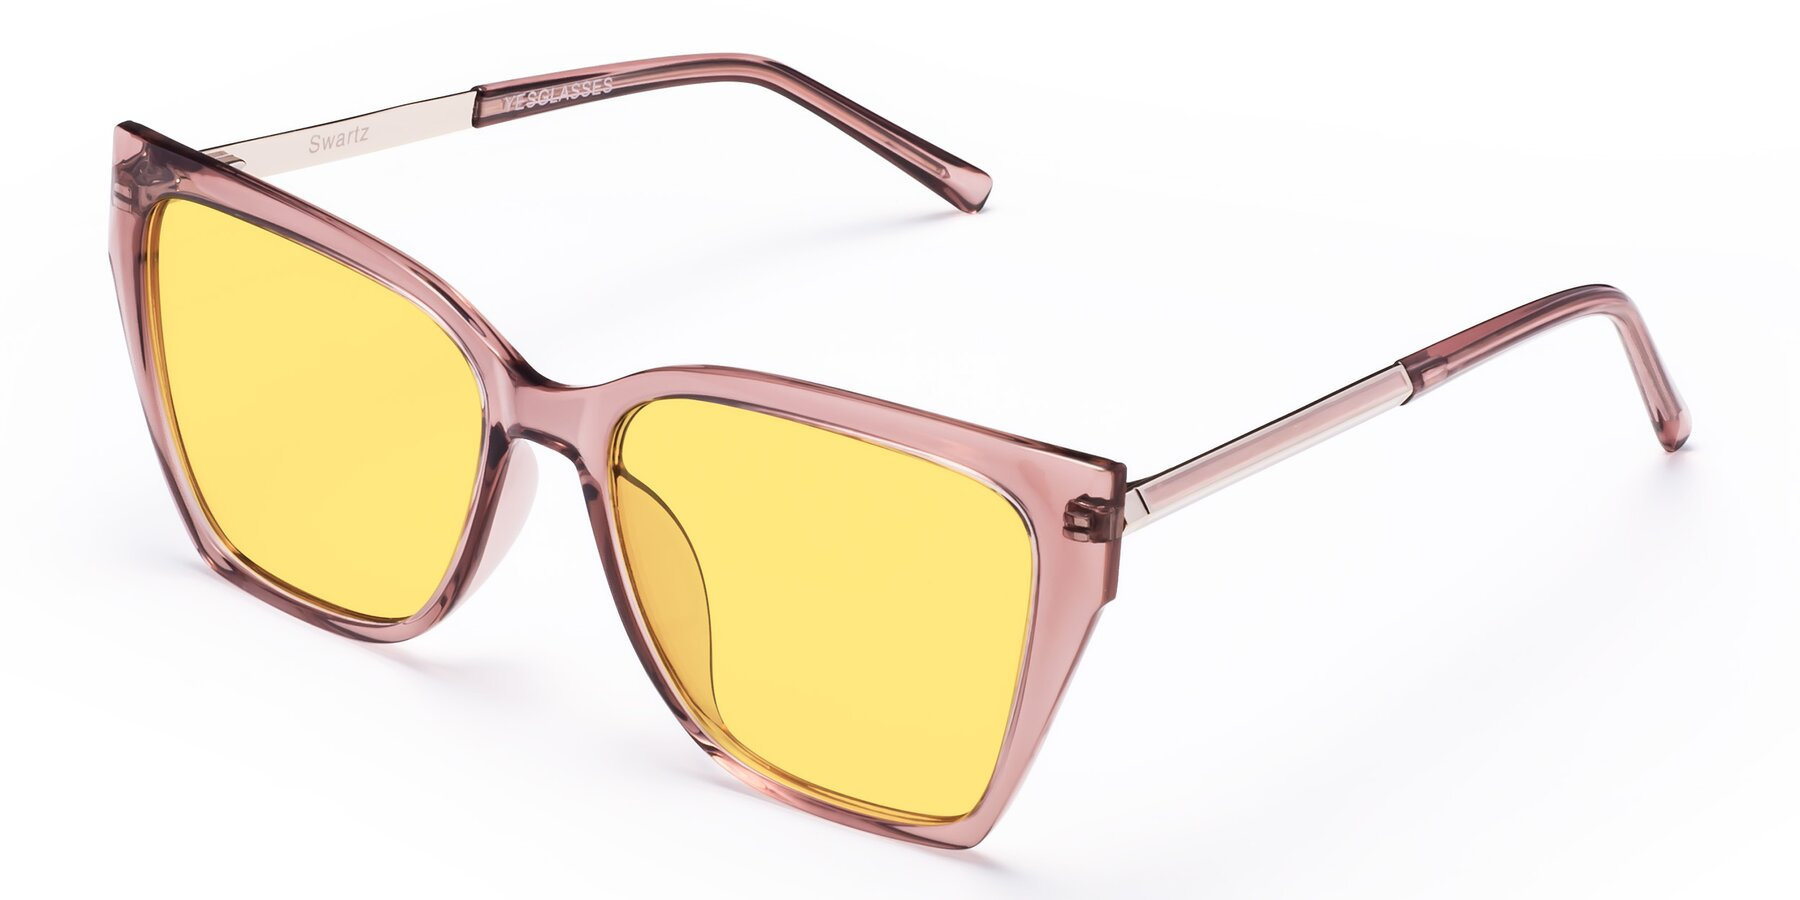 Angle of Swartz in Grape with Medium Yellow Tinted Lenses